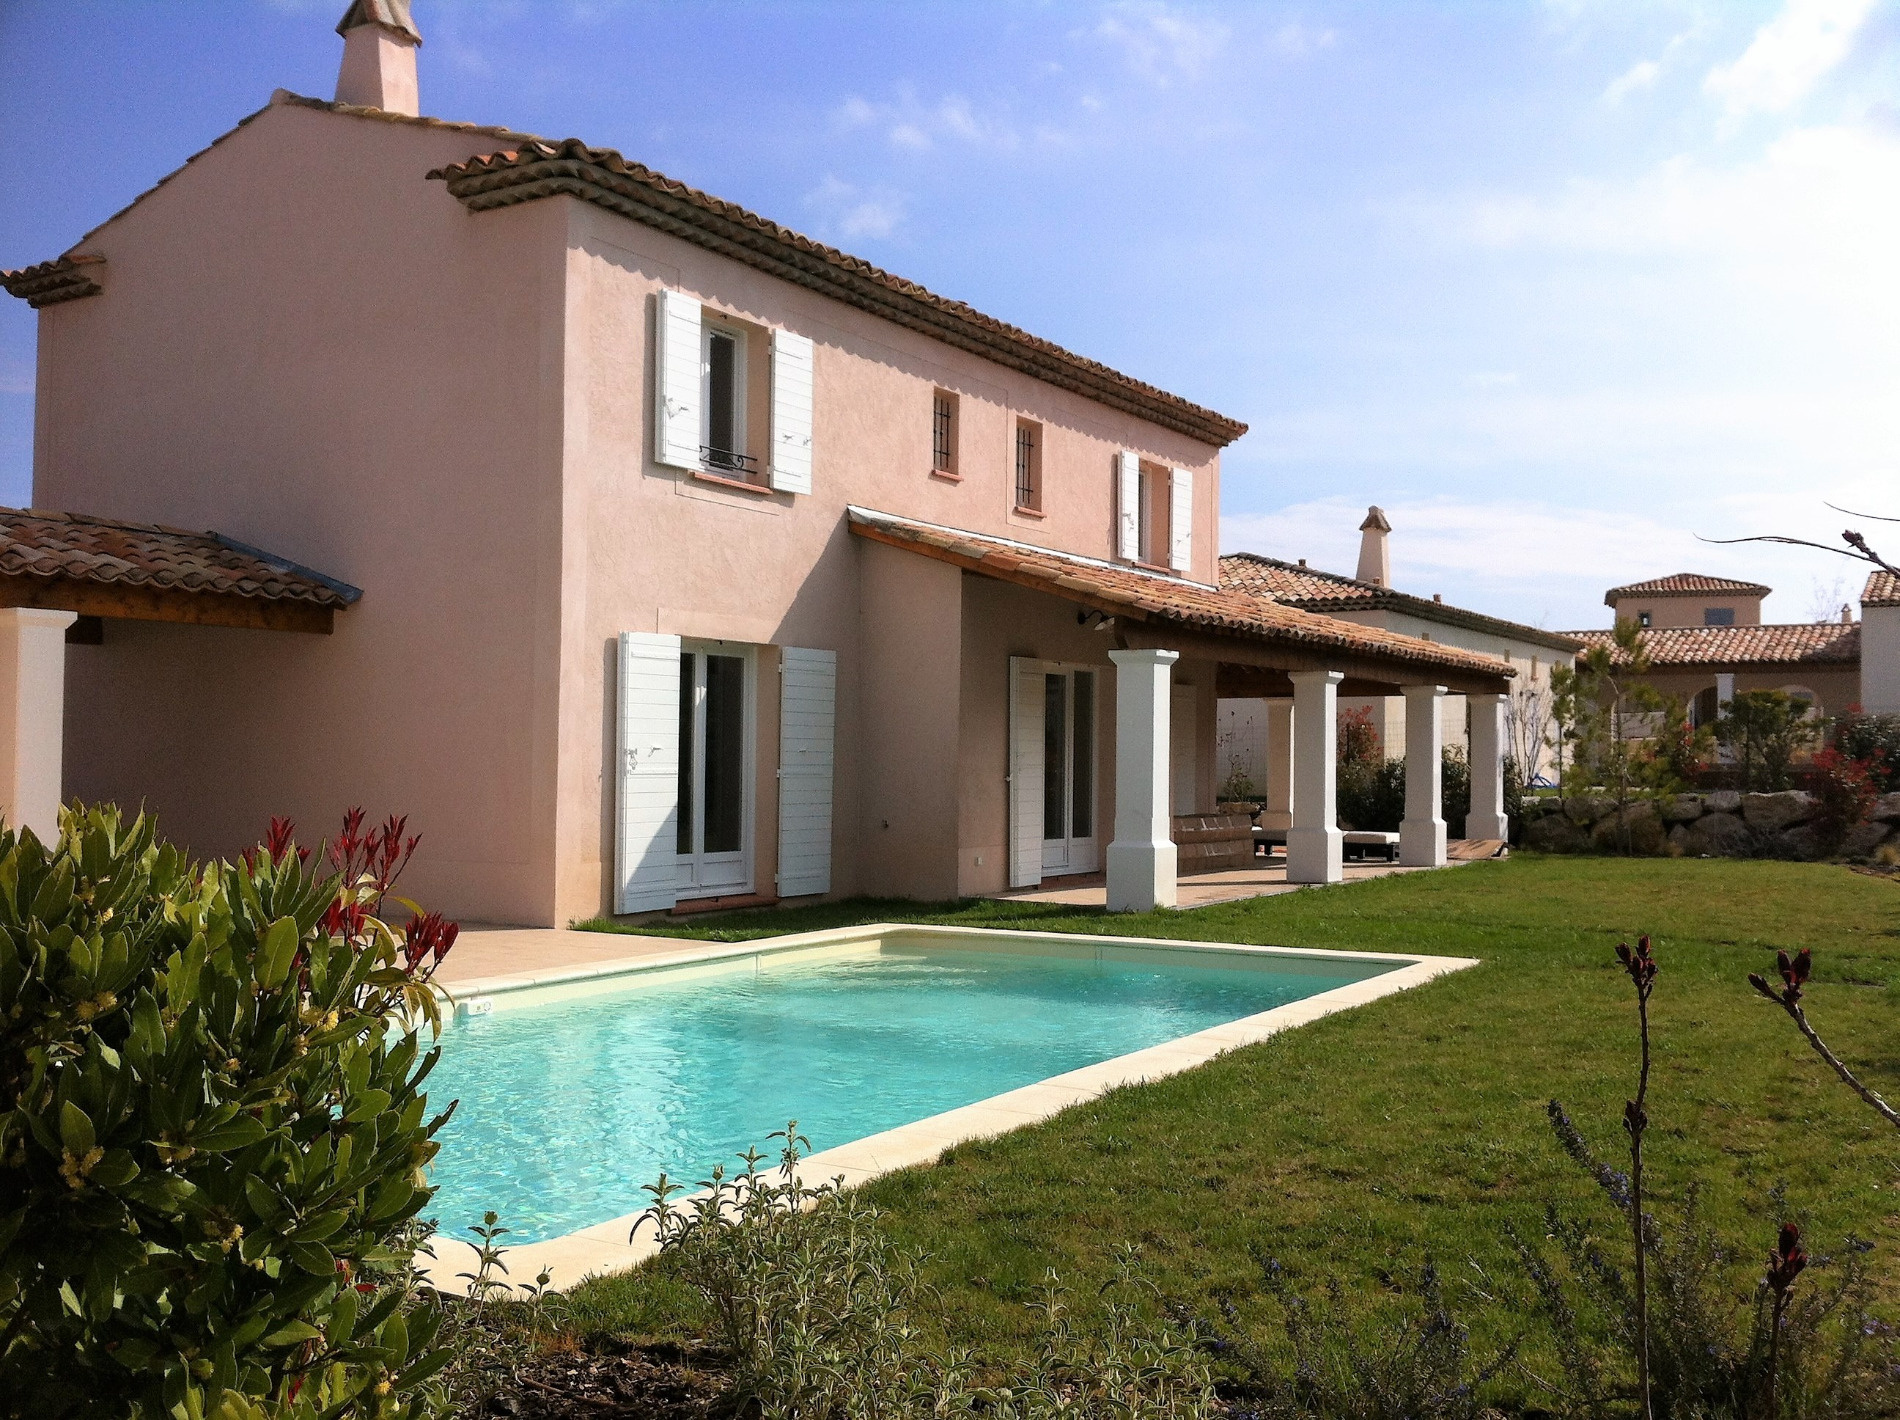 Agence immobili re miximmo achat vente et location for Agence immobiliere site